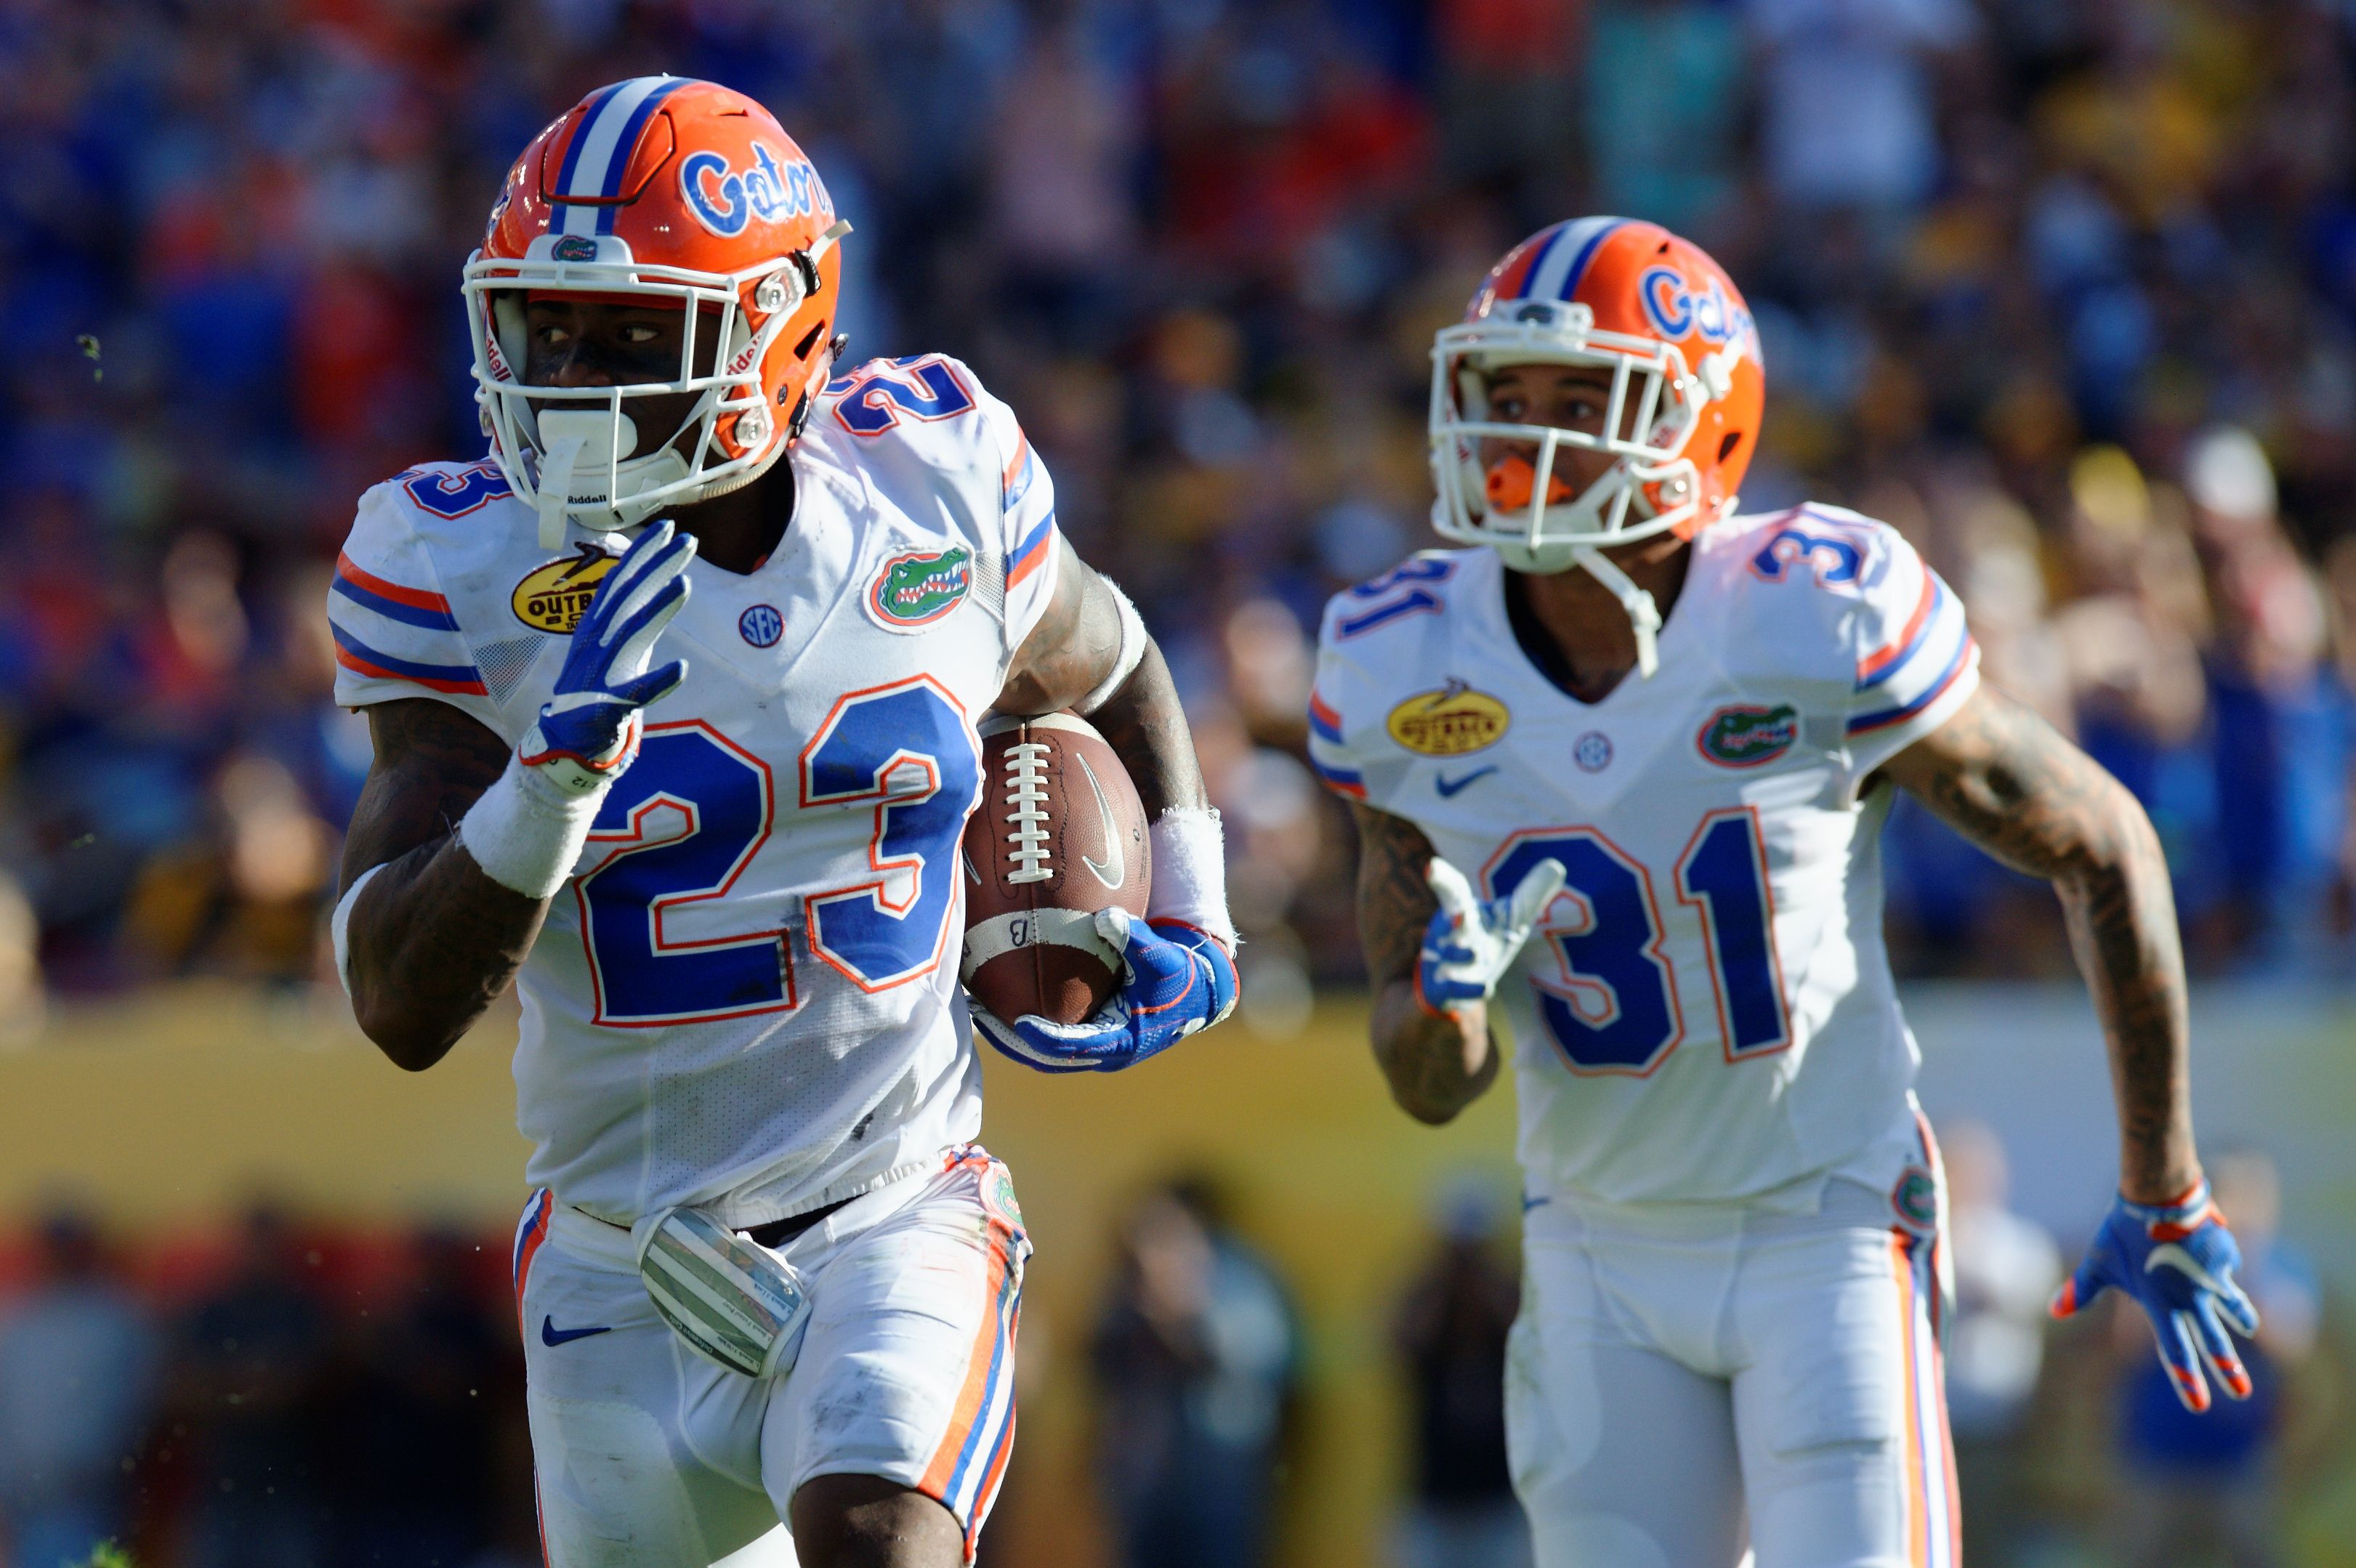 Florida Gators footbal photo gallery from the Outback Bowl